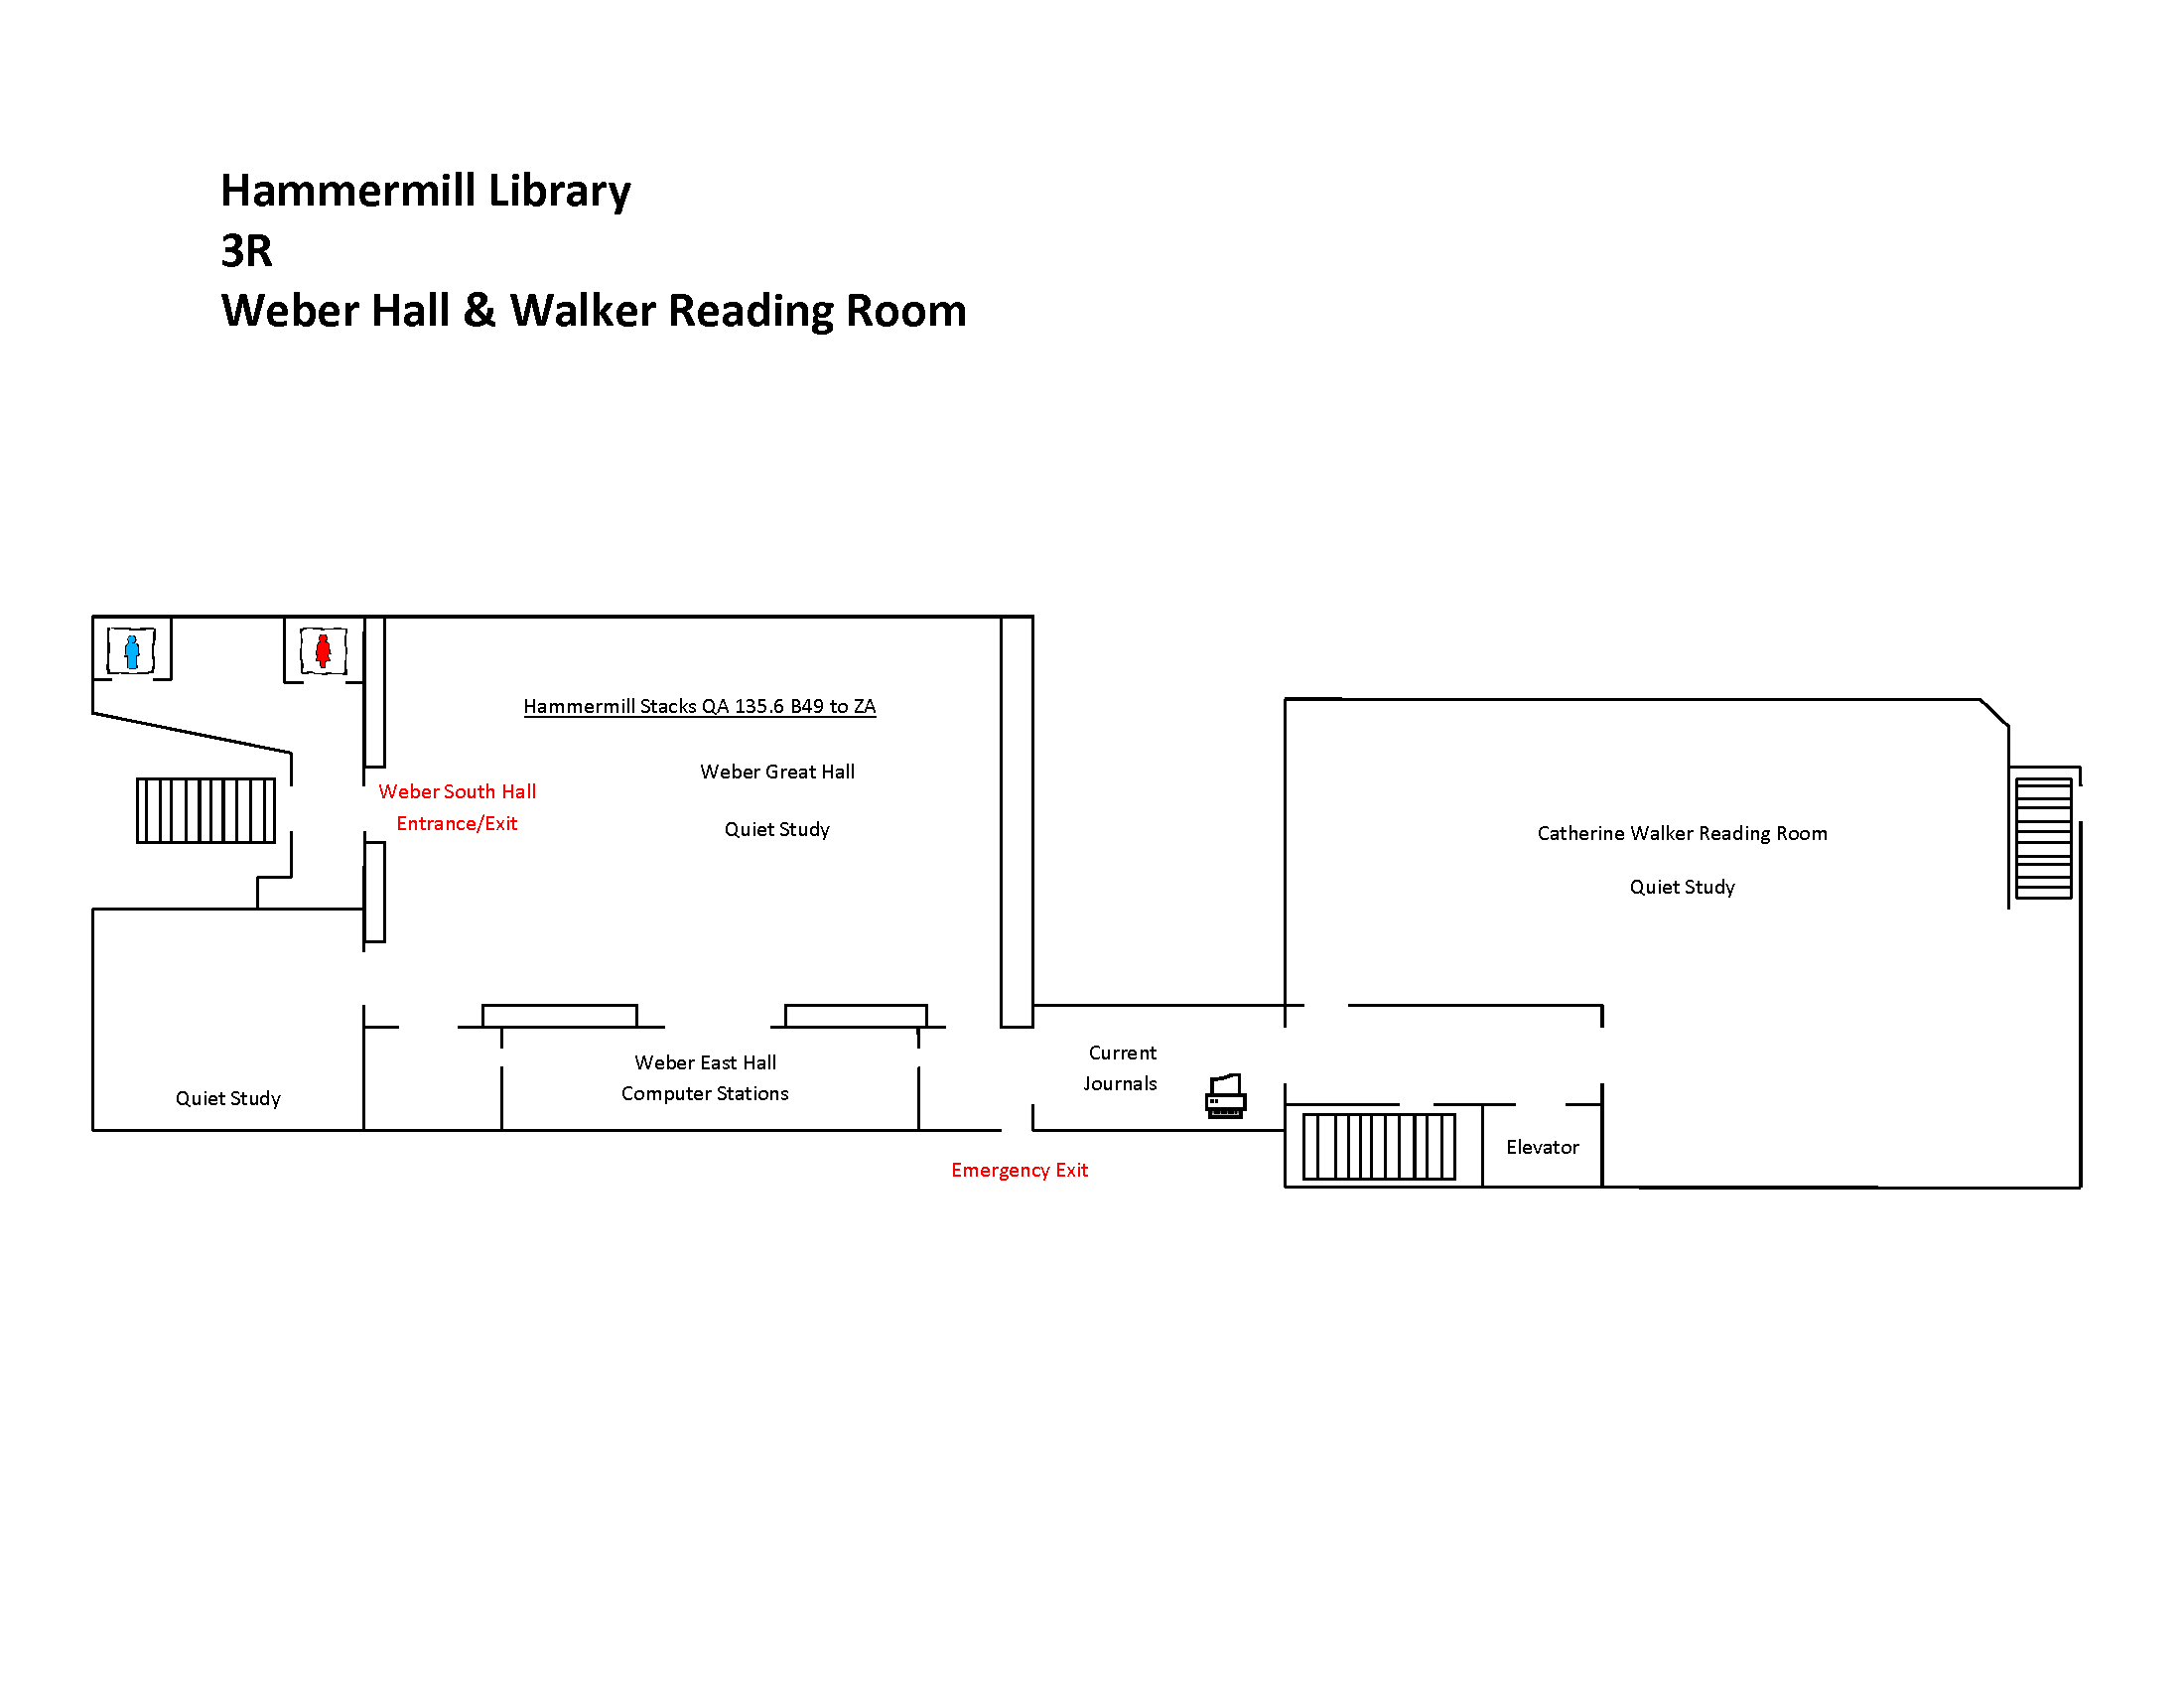 3R weber hall & Walker Reading Room Map